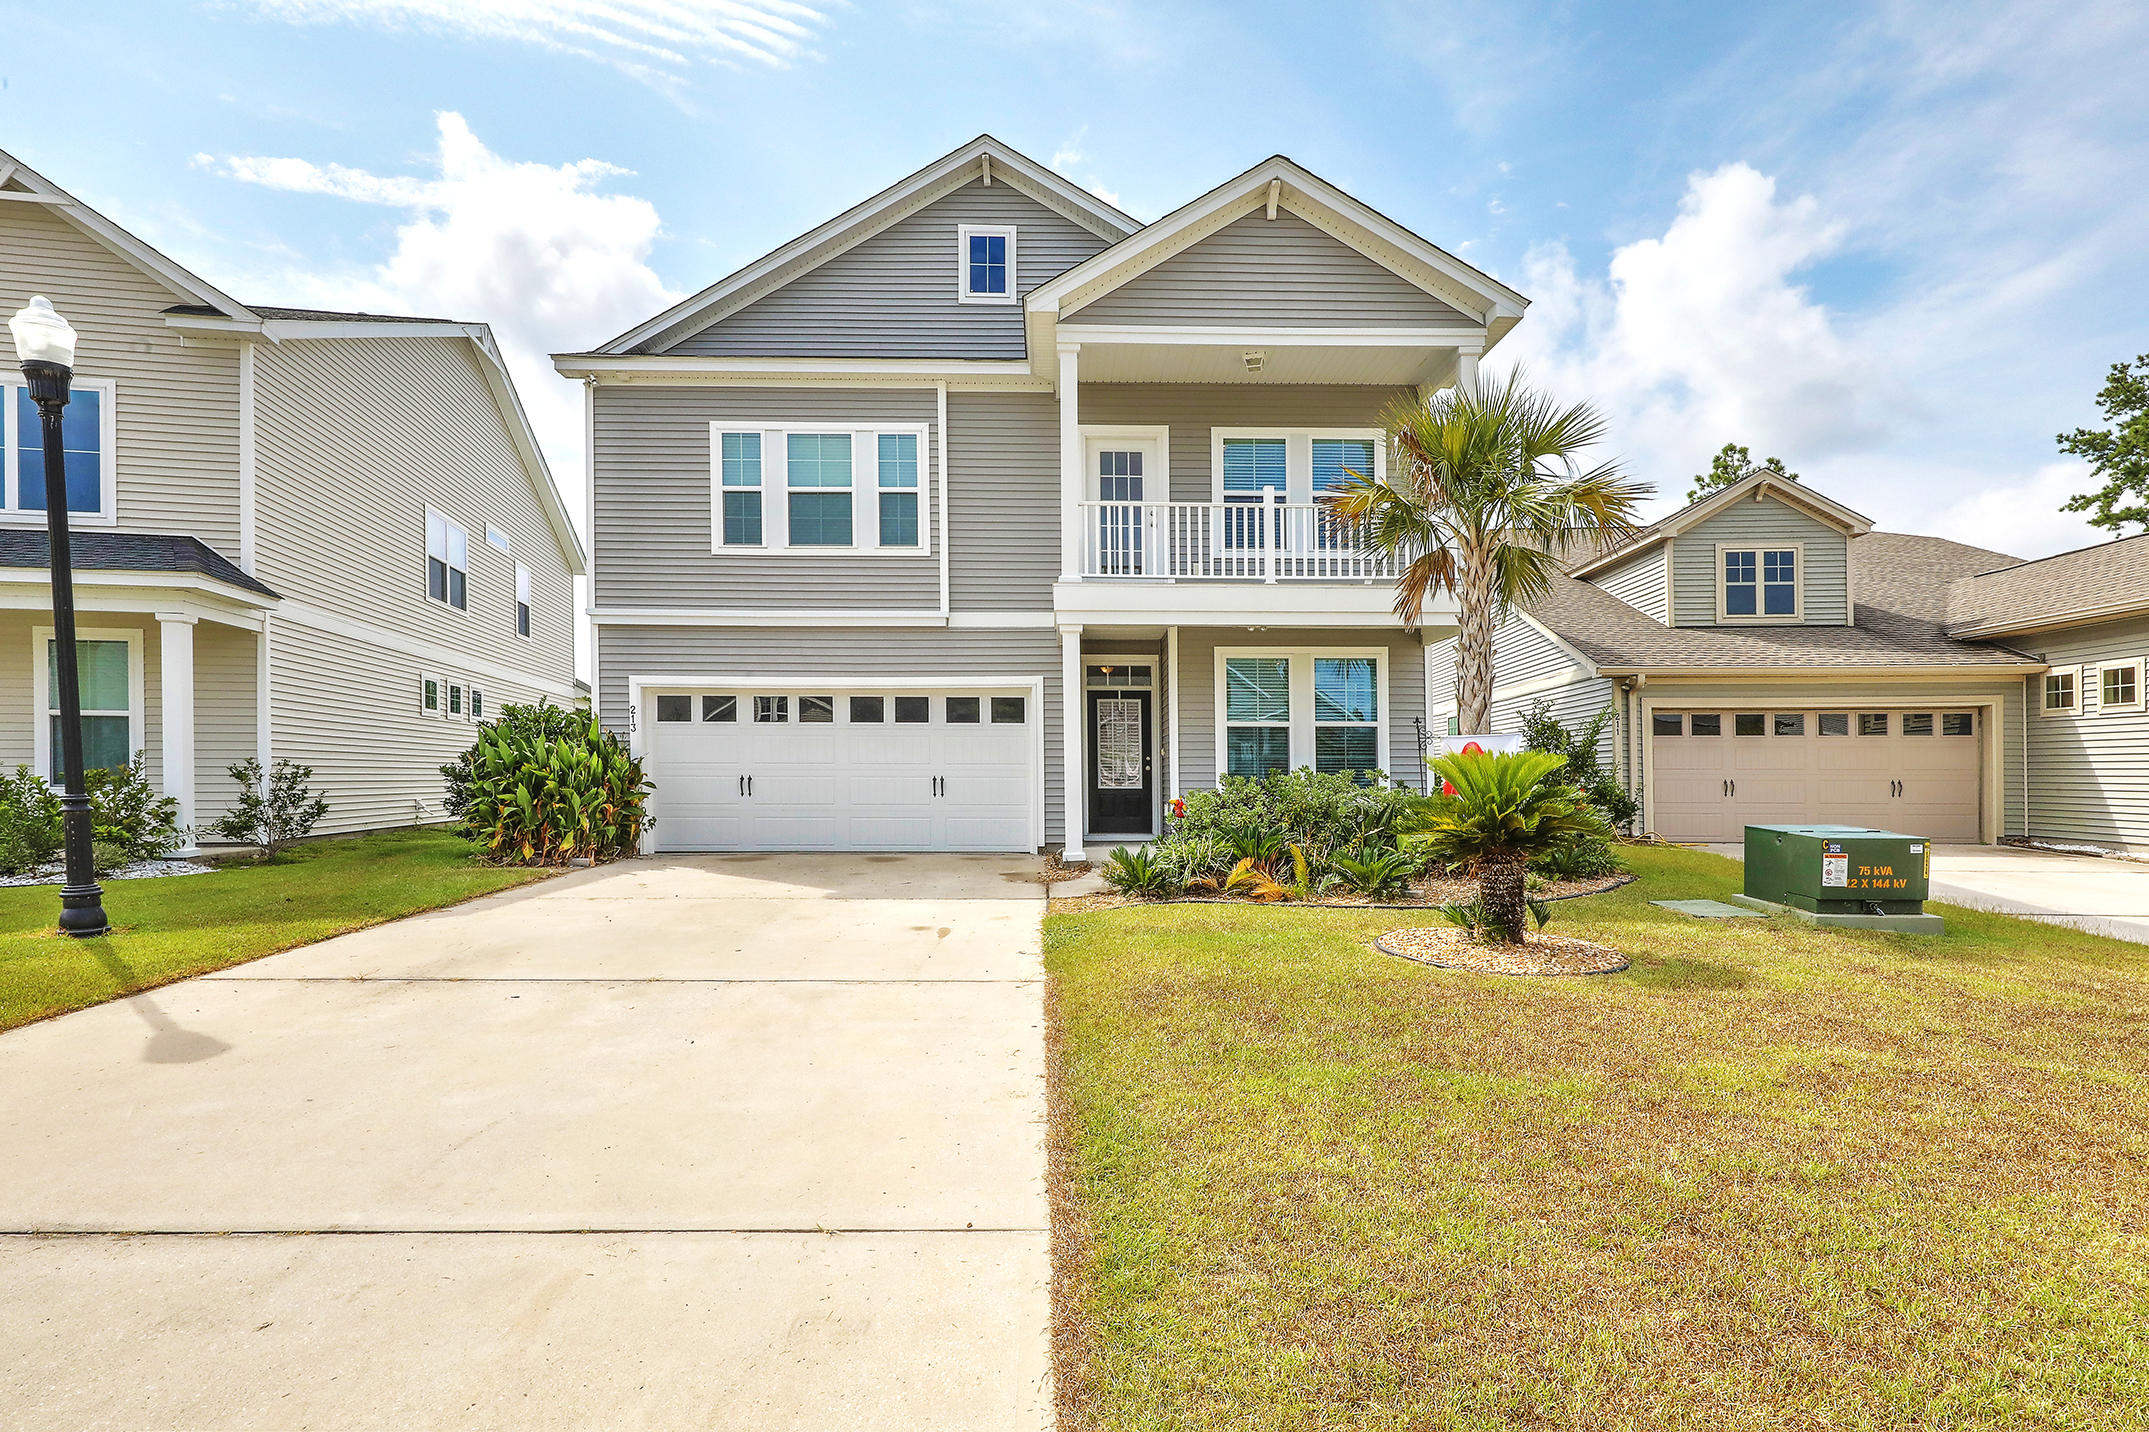 213 Palmetto Walk Drive Summerville, SC 29486